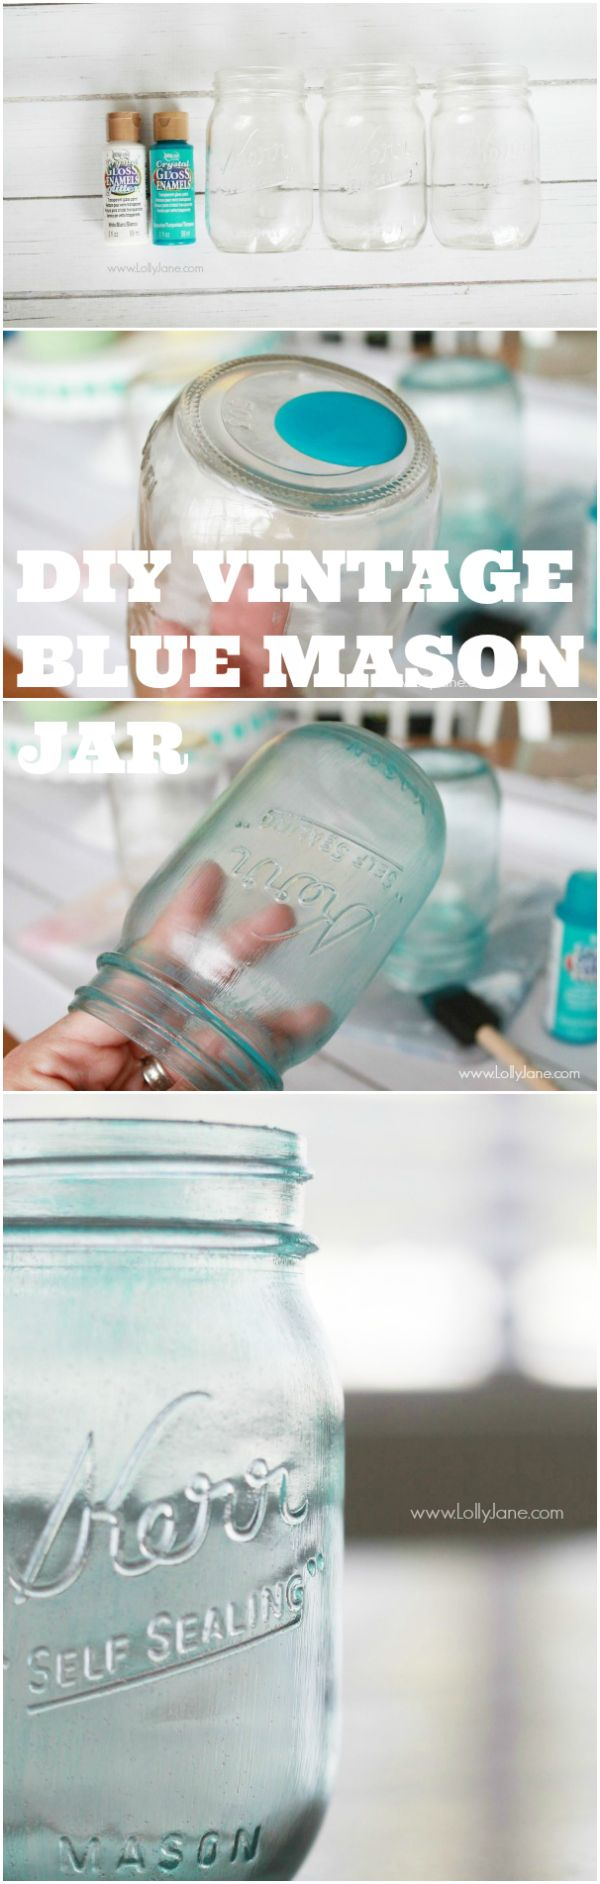 DIY vintage blue mason jar 73 best